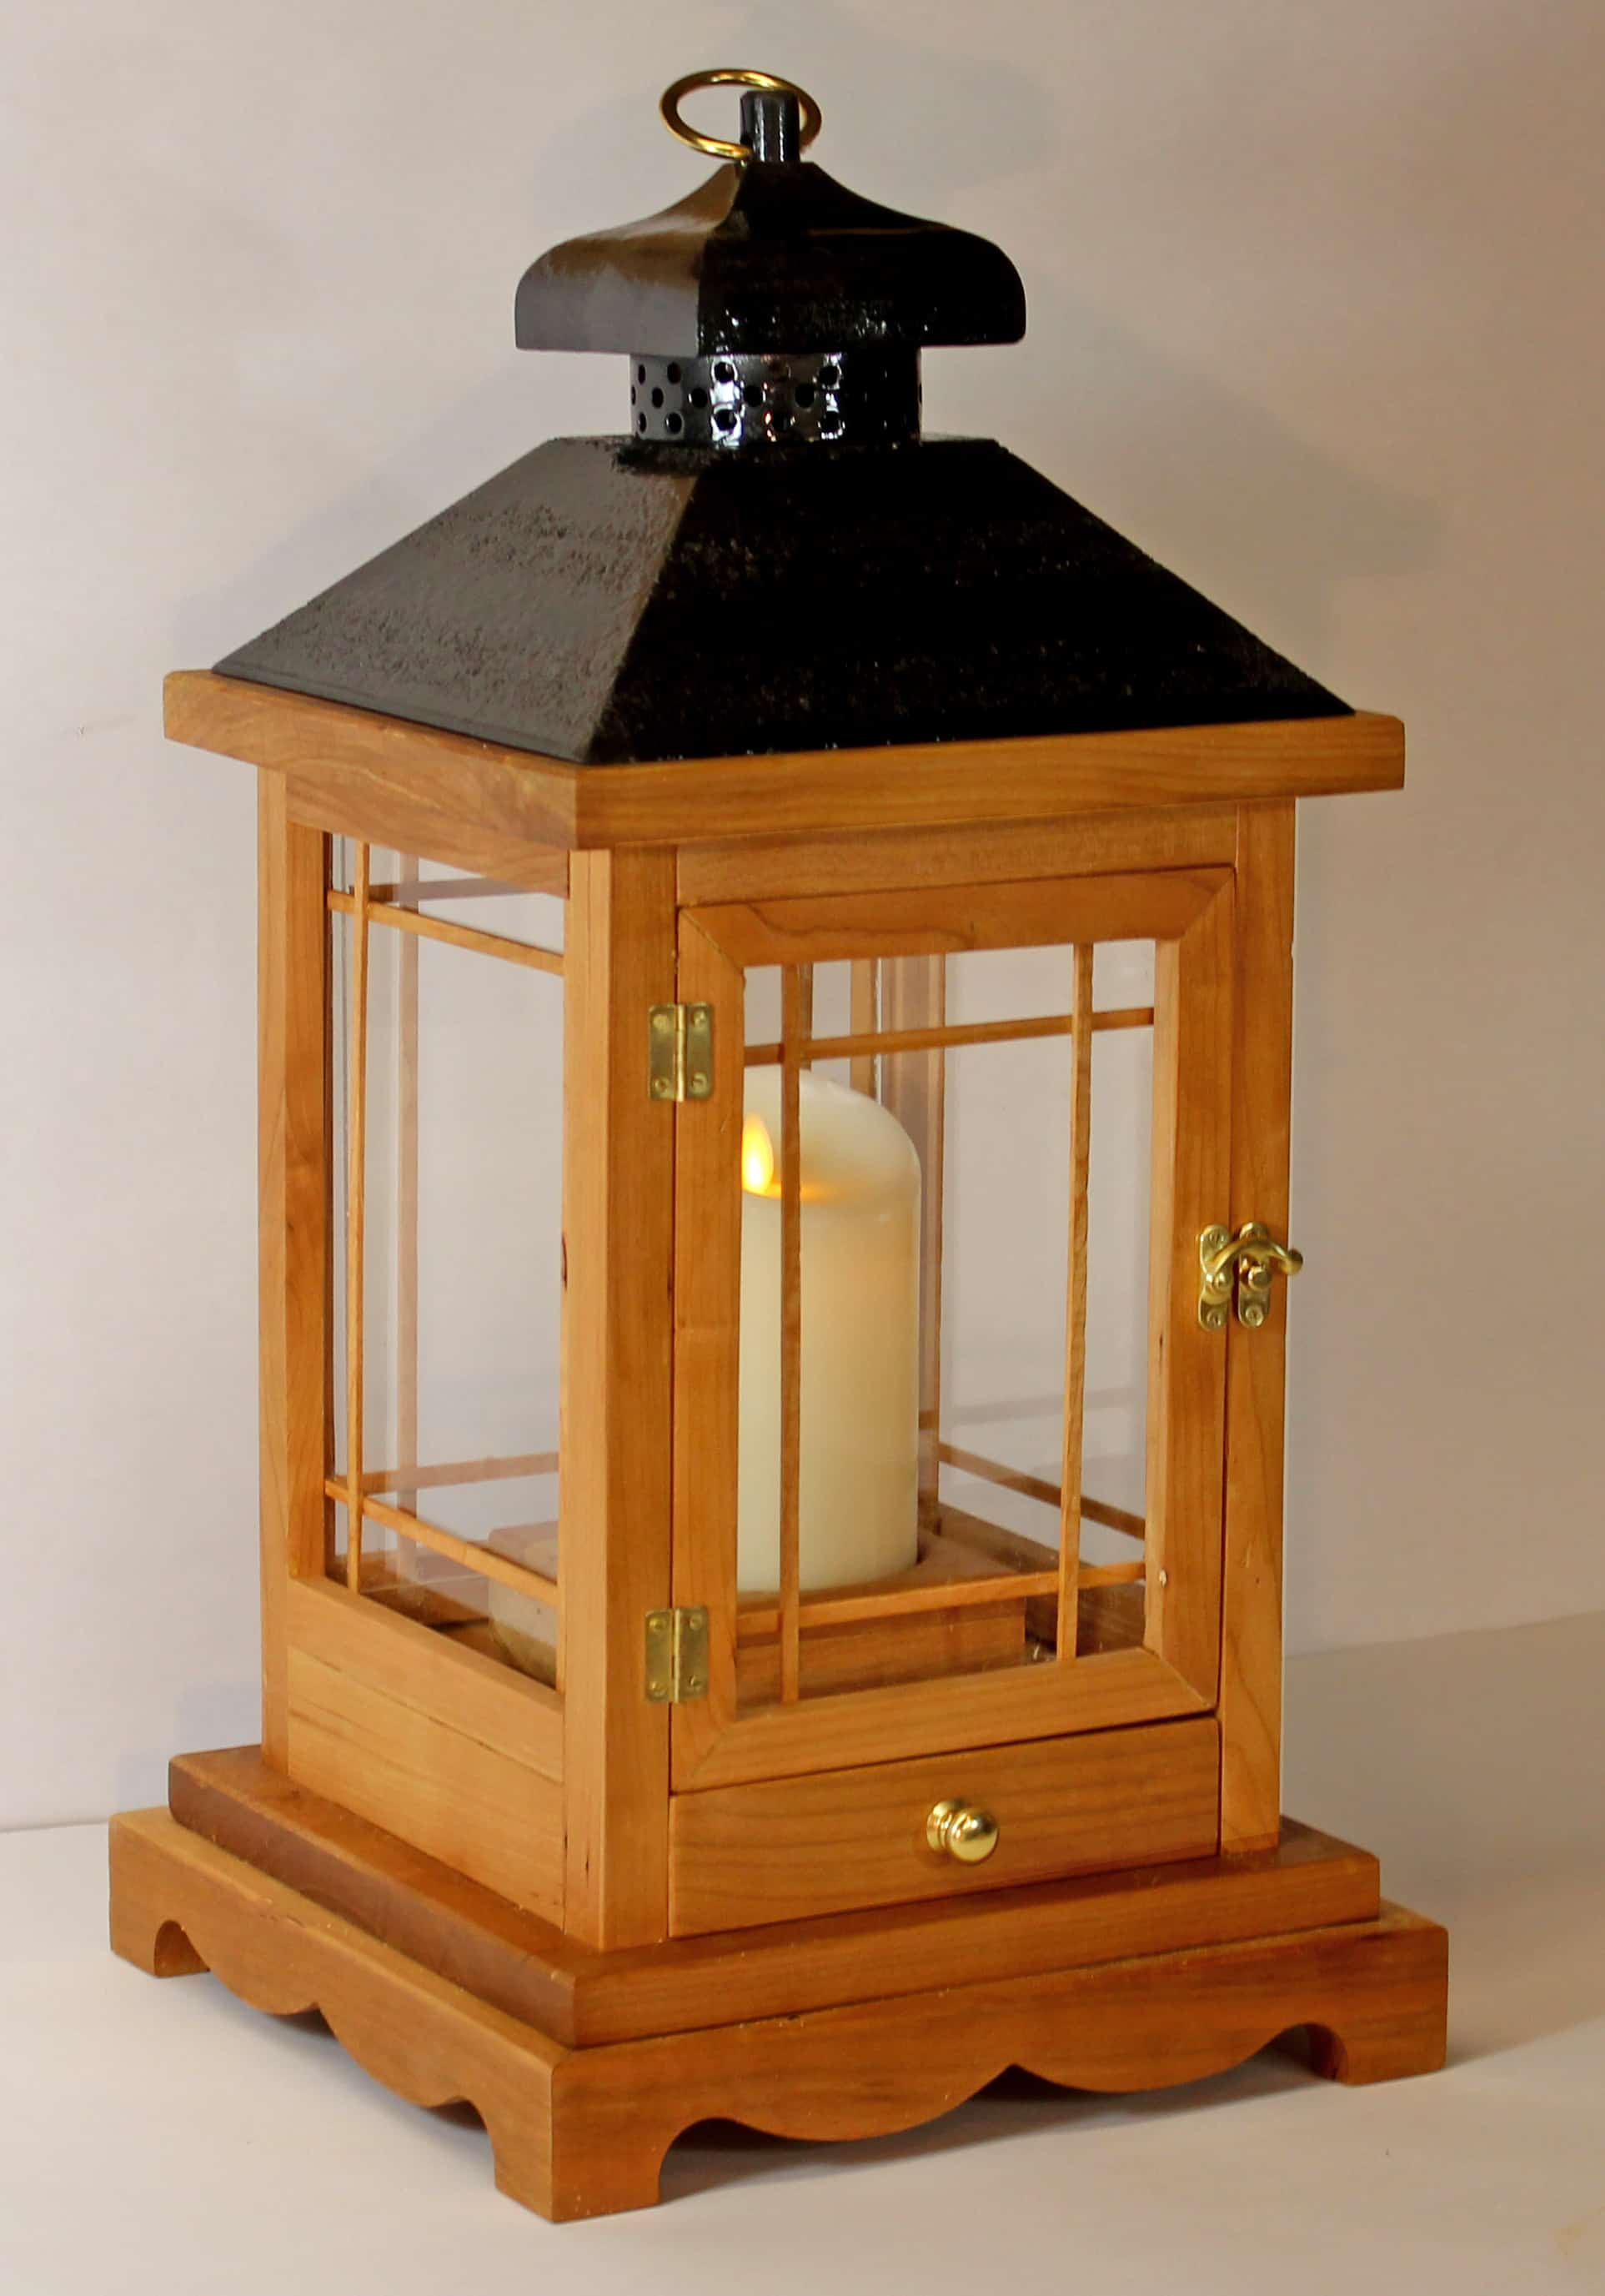 A Woodworking Plan For Building A Wood Lantern For Flameless Candles